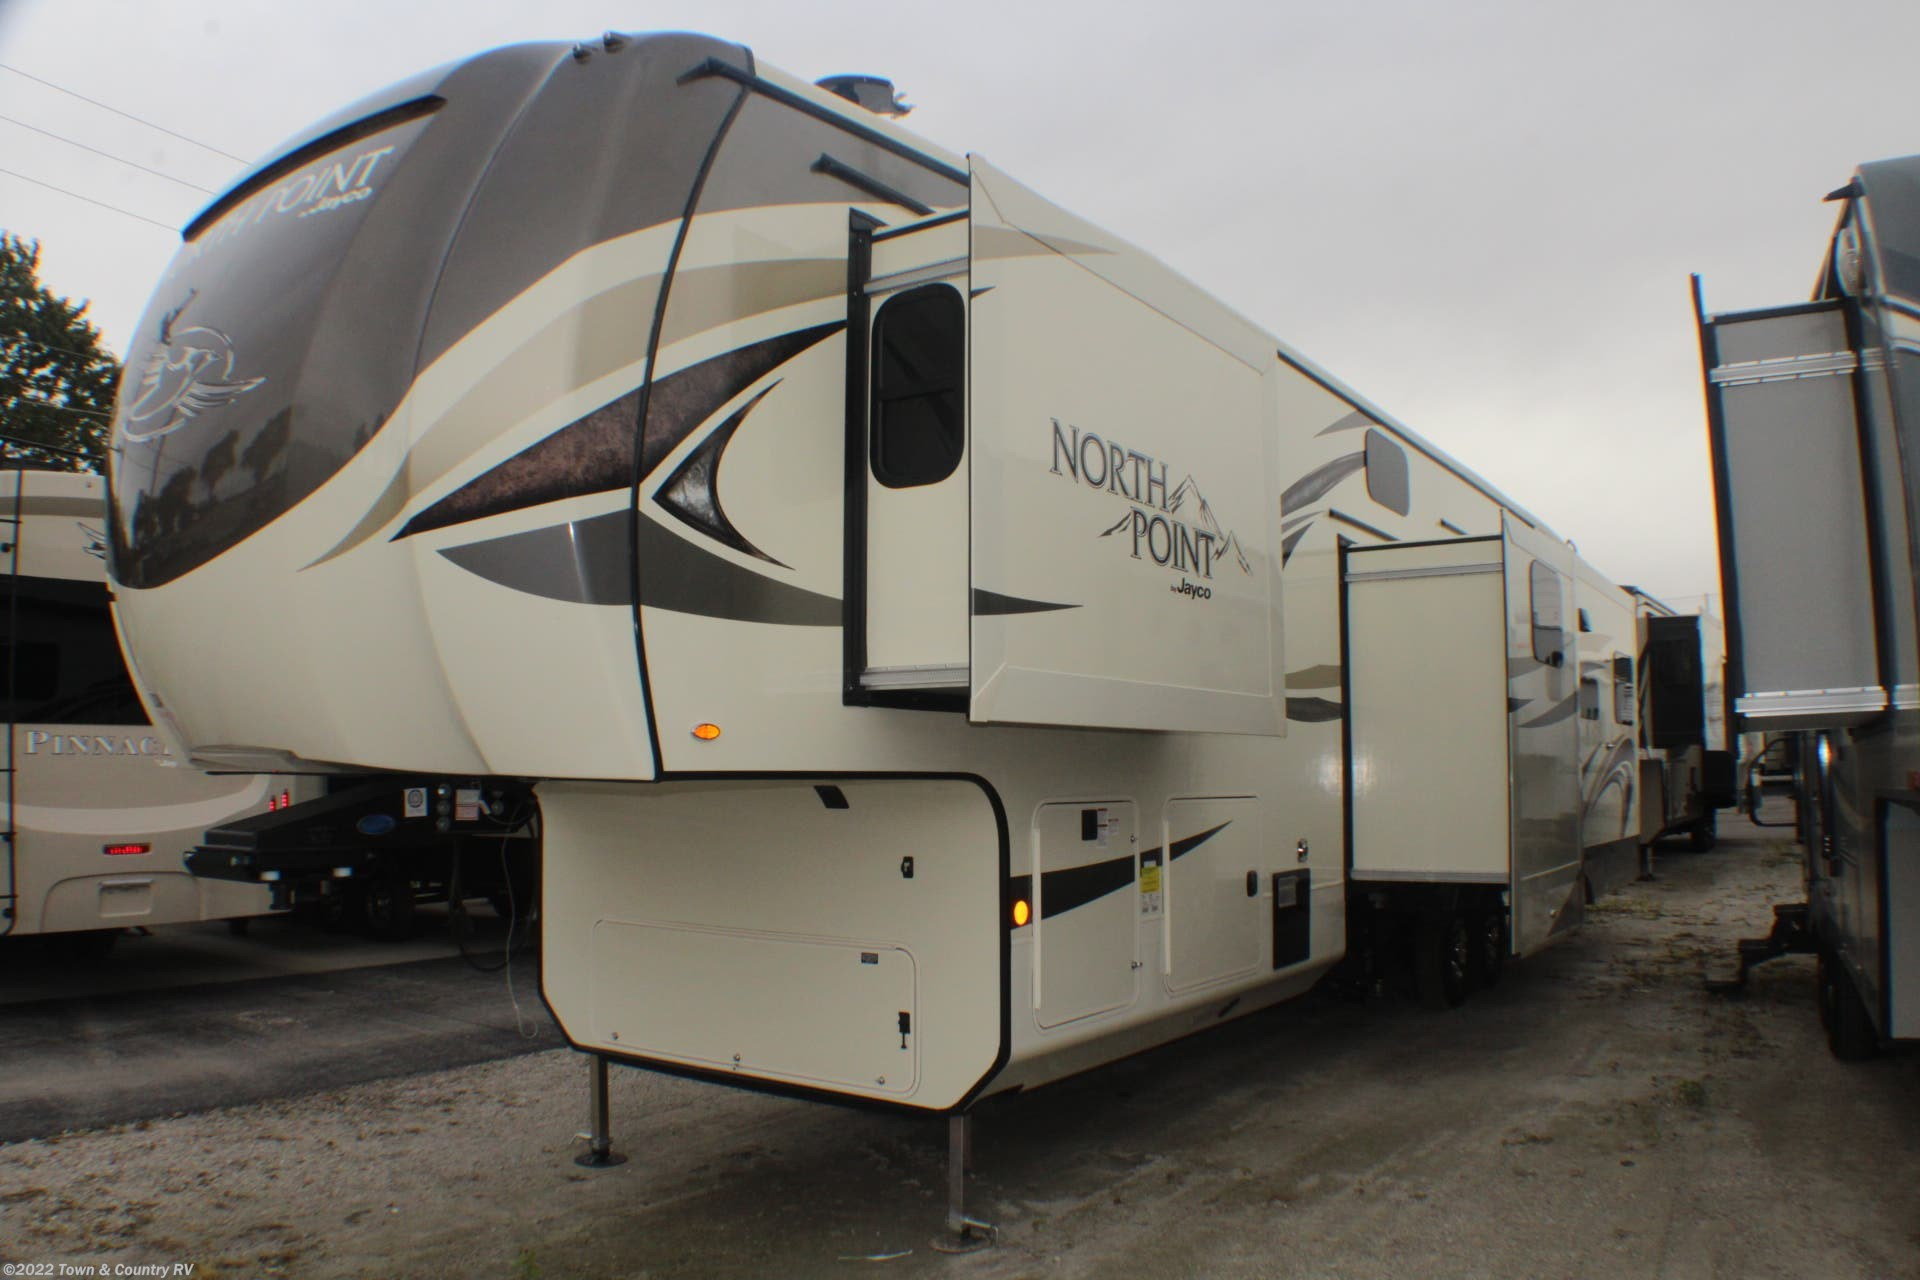 2019 Jayco RV North Point 377RLBH for Sale in Clyde, OH 43410   2929